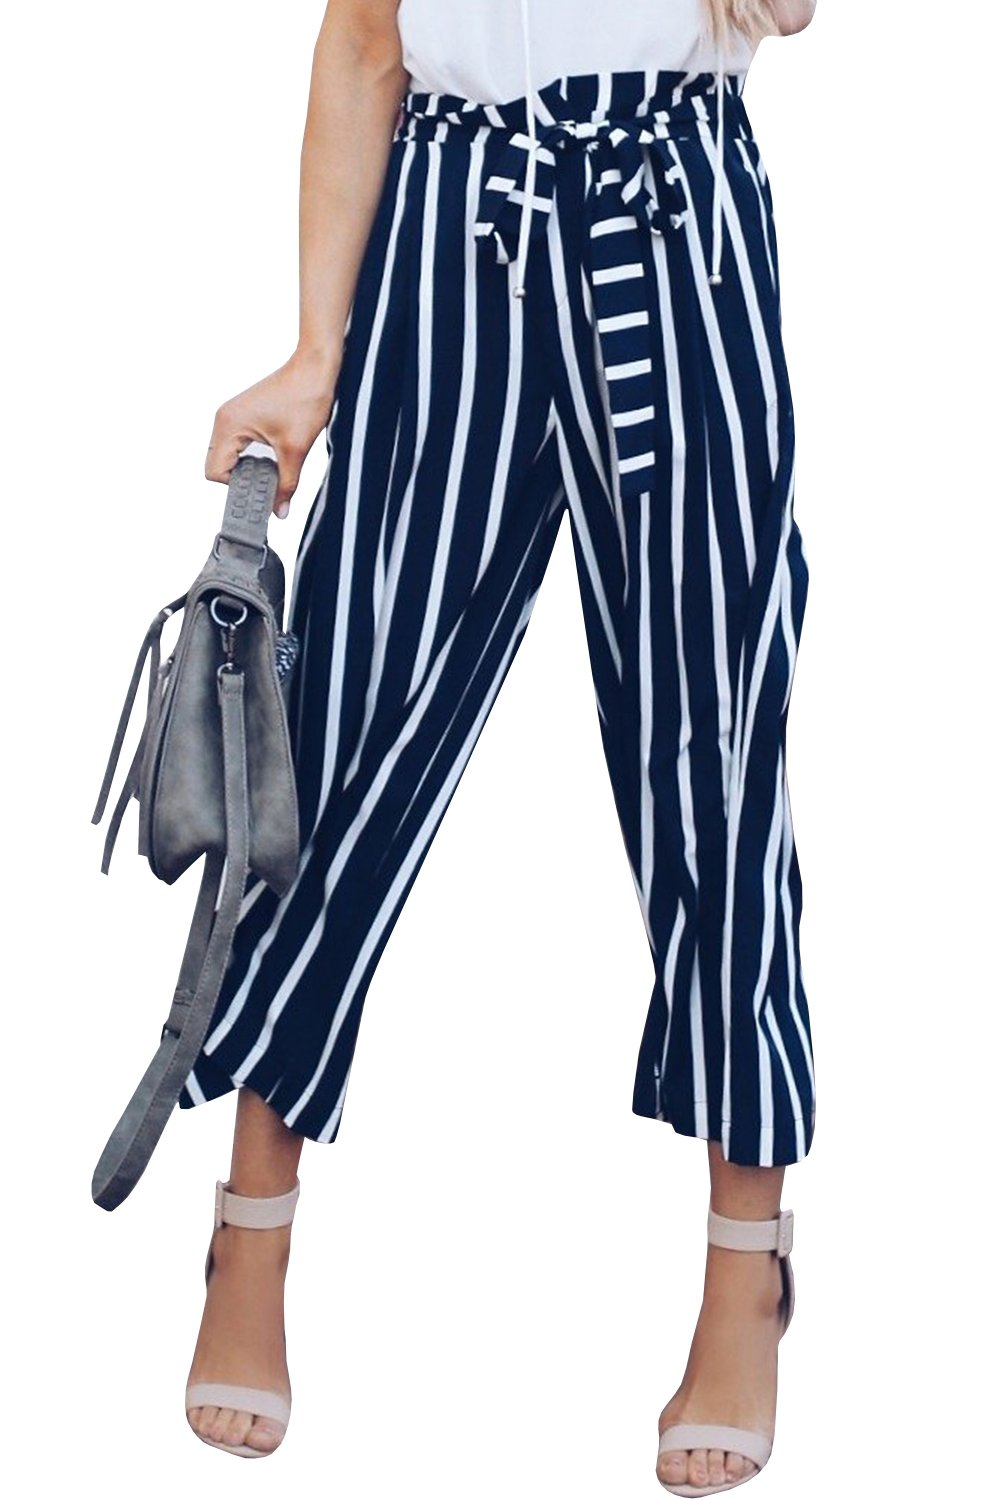 JeanewPole1 Womens Striped High Waist Wide Leg Loose Flowy Palazzo Belted Pants